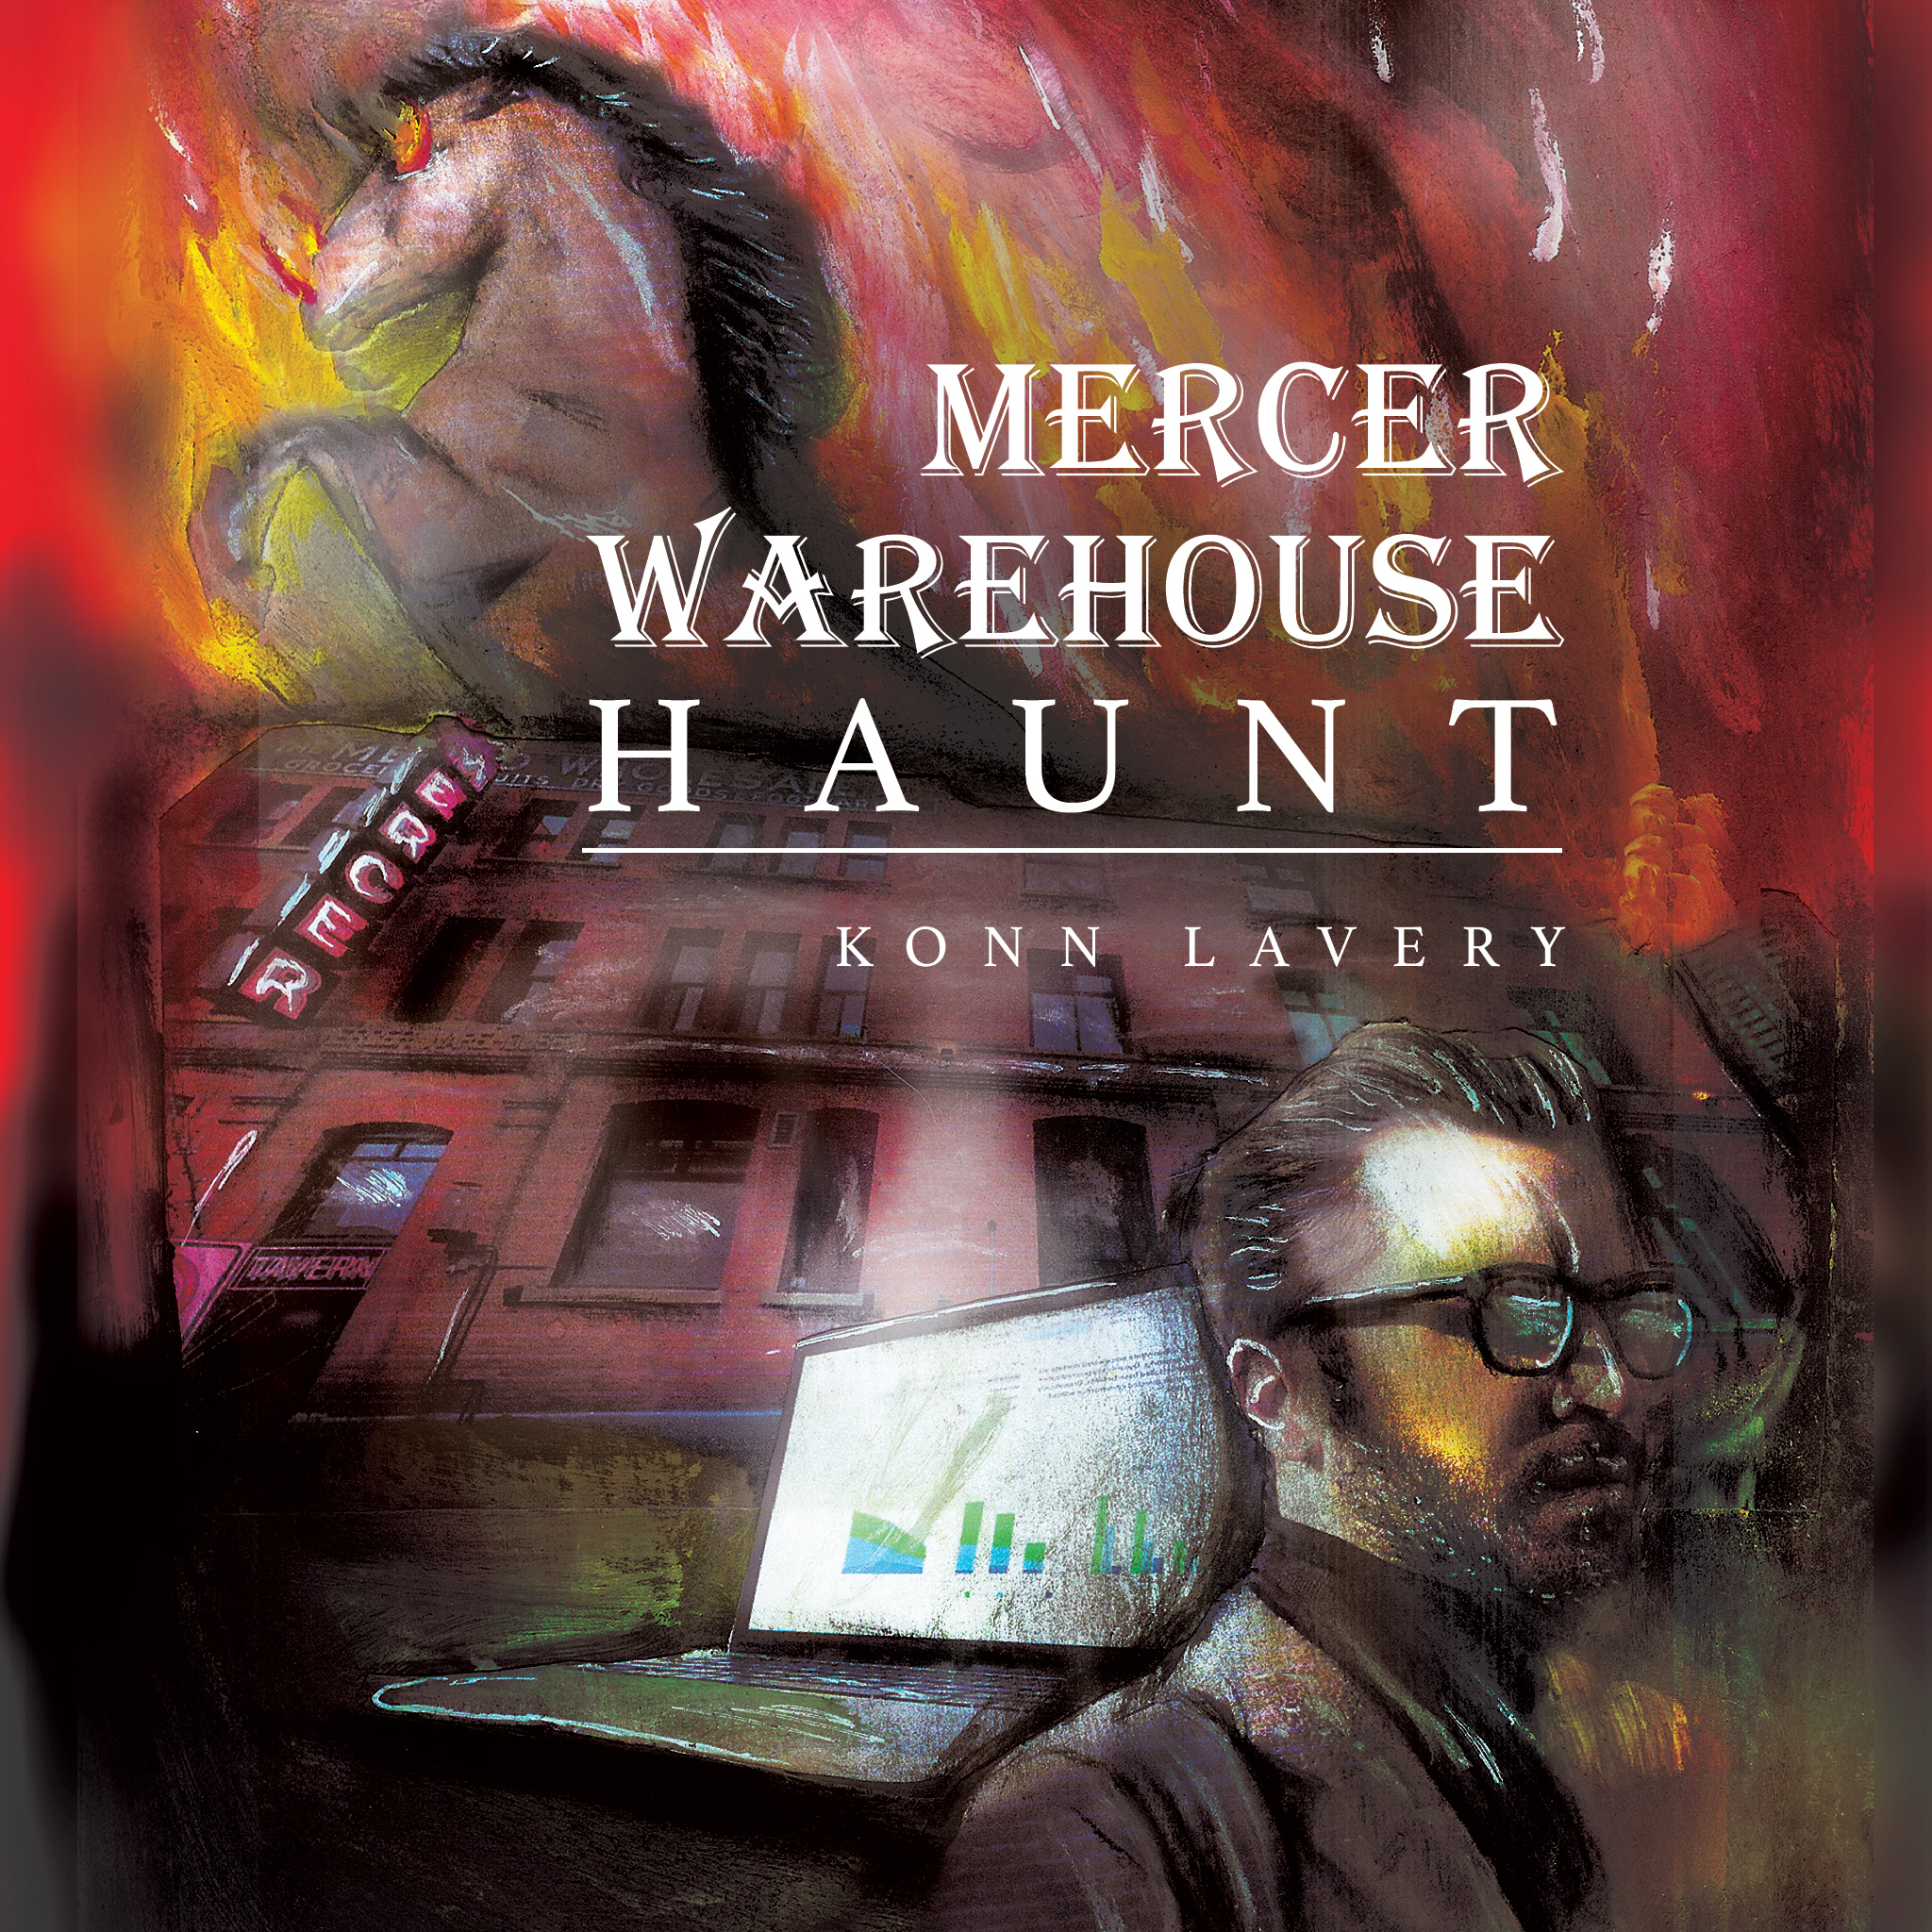 Mercer Warehouse Haunt